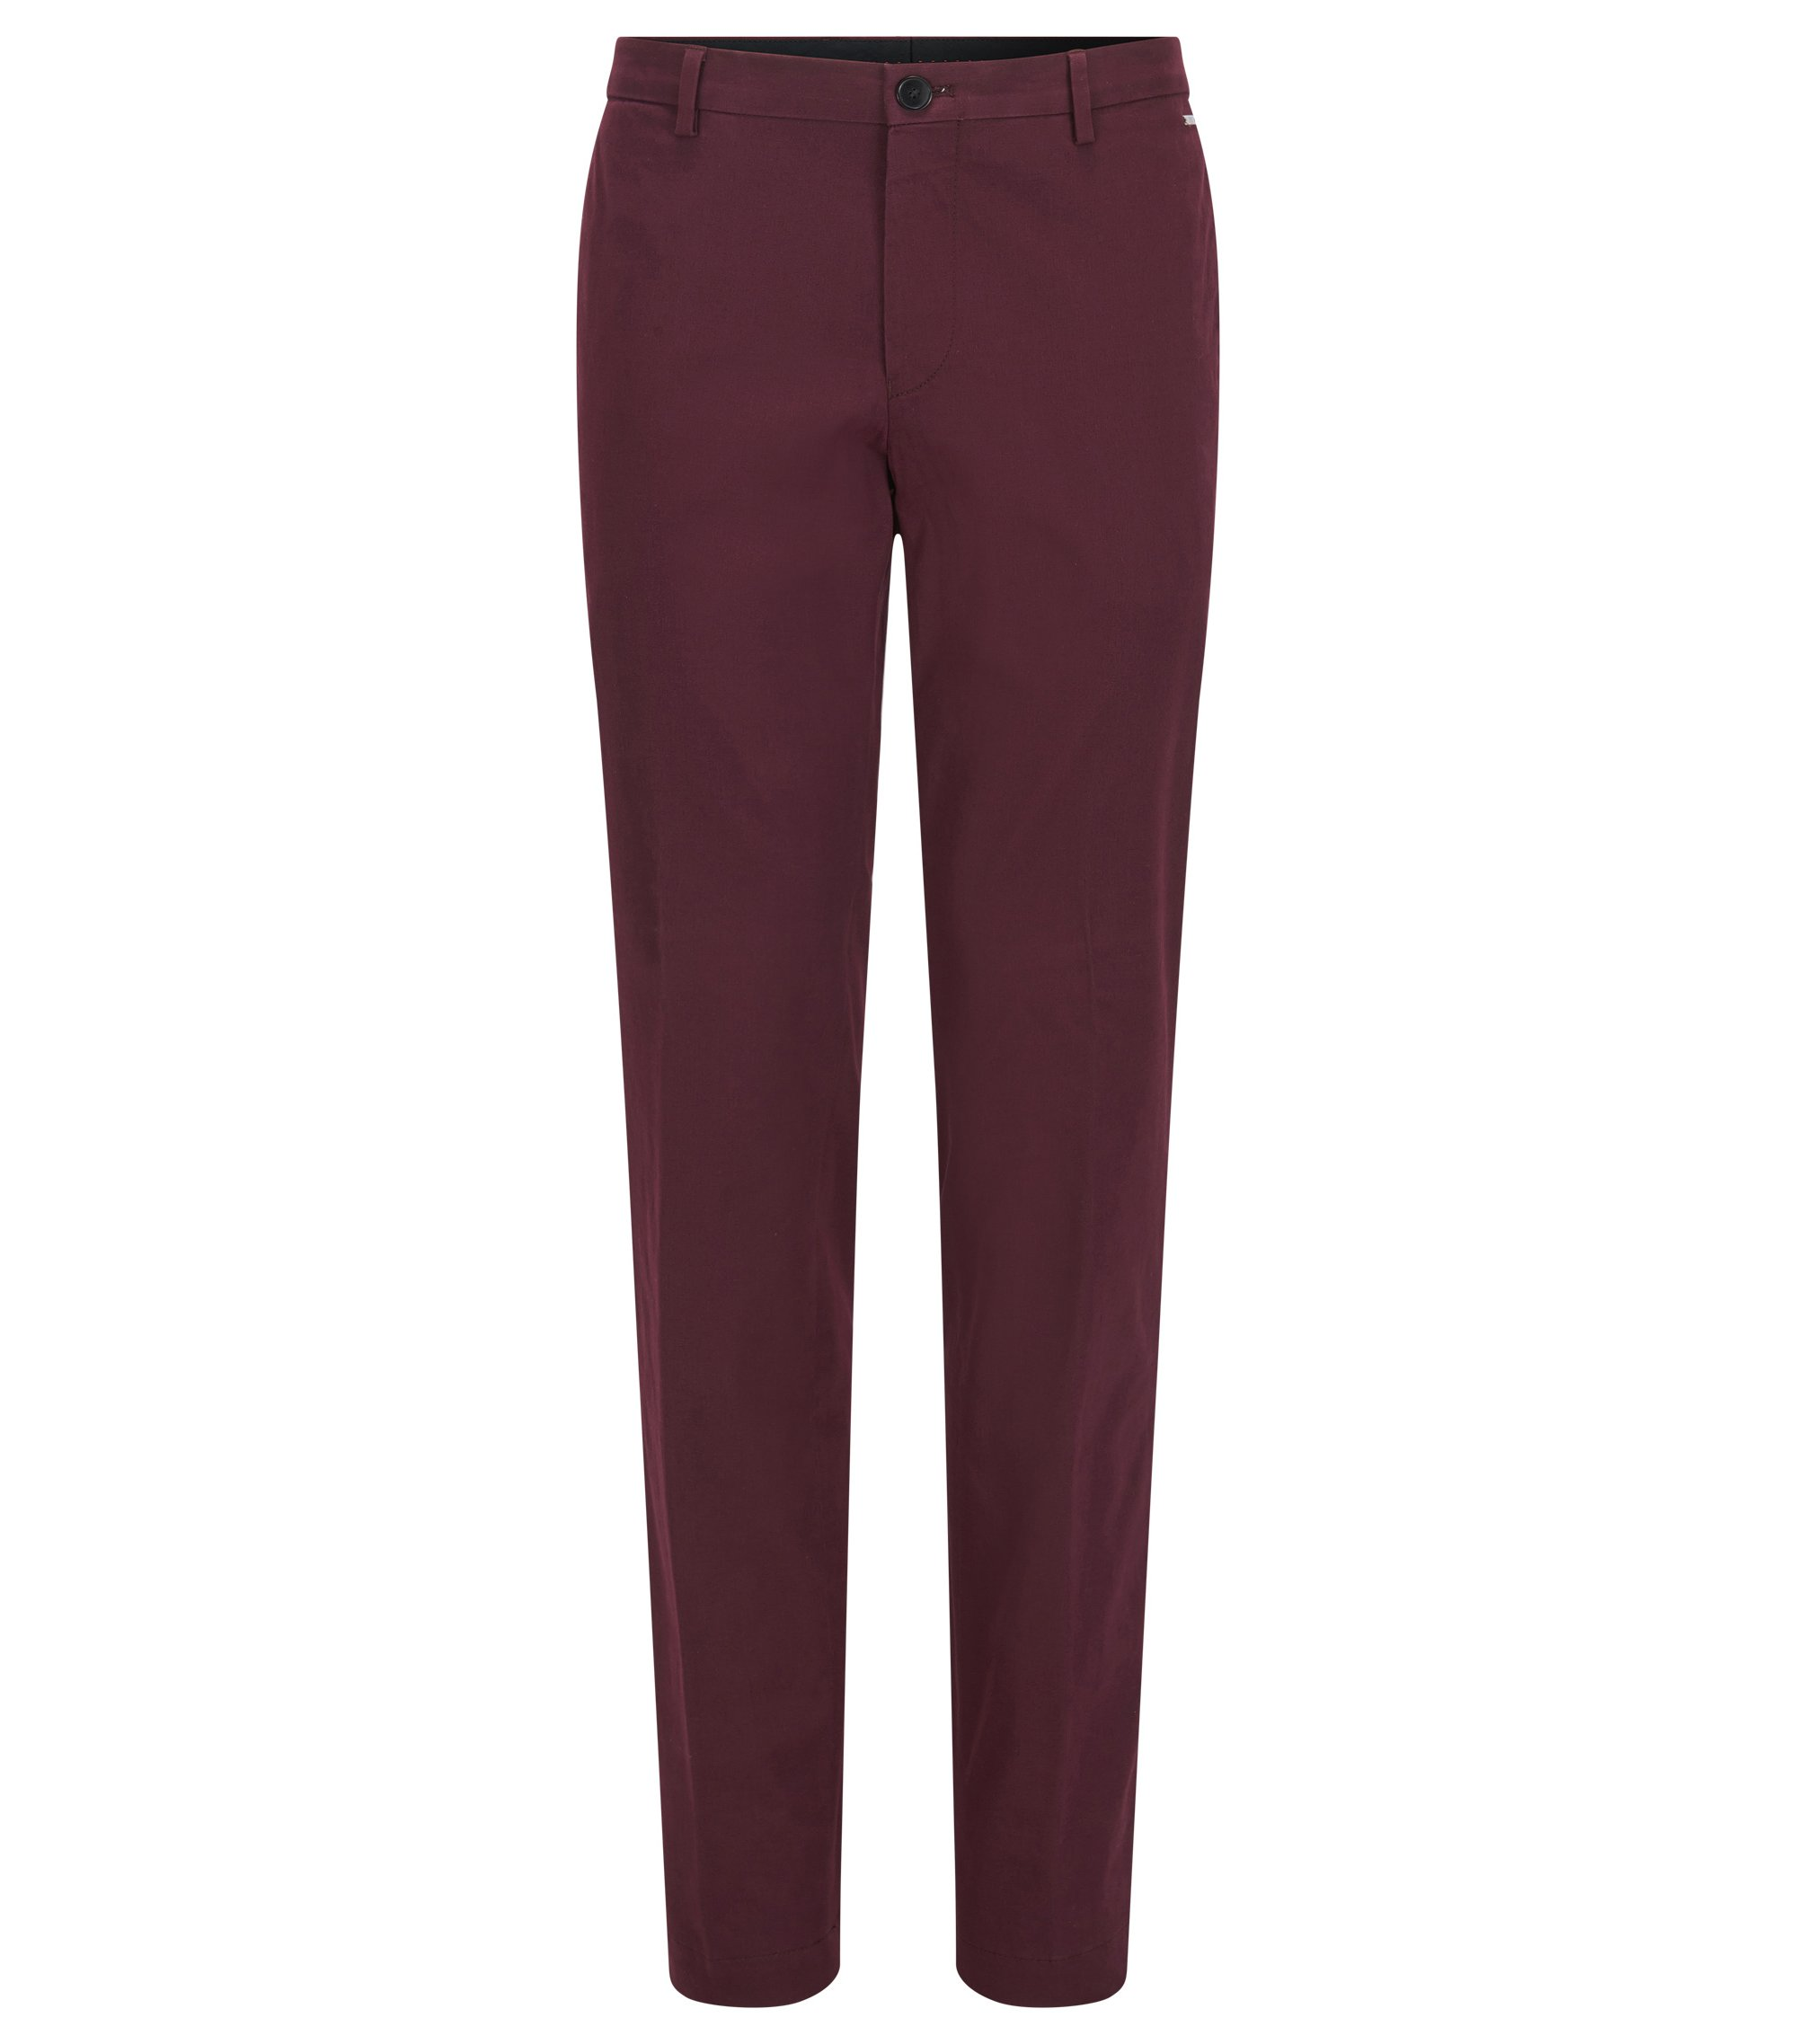 Pantalon Slim Fit en coton stretch, Rouge sombre